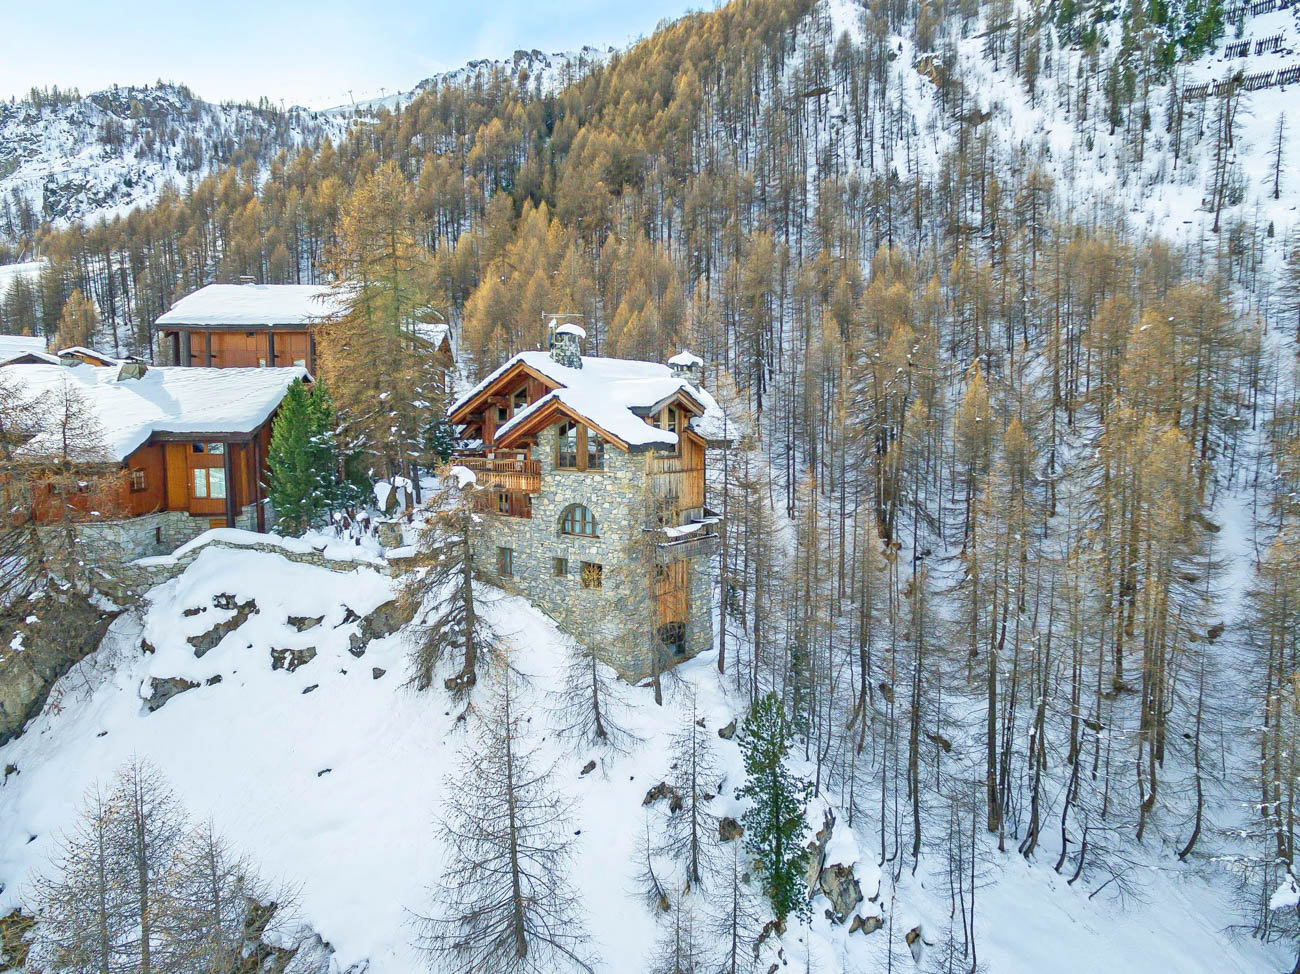 rent chalet by the week Next